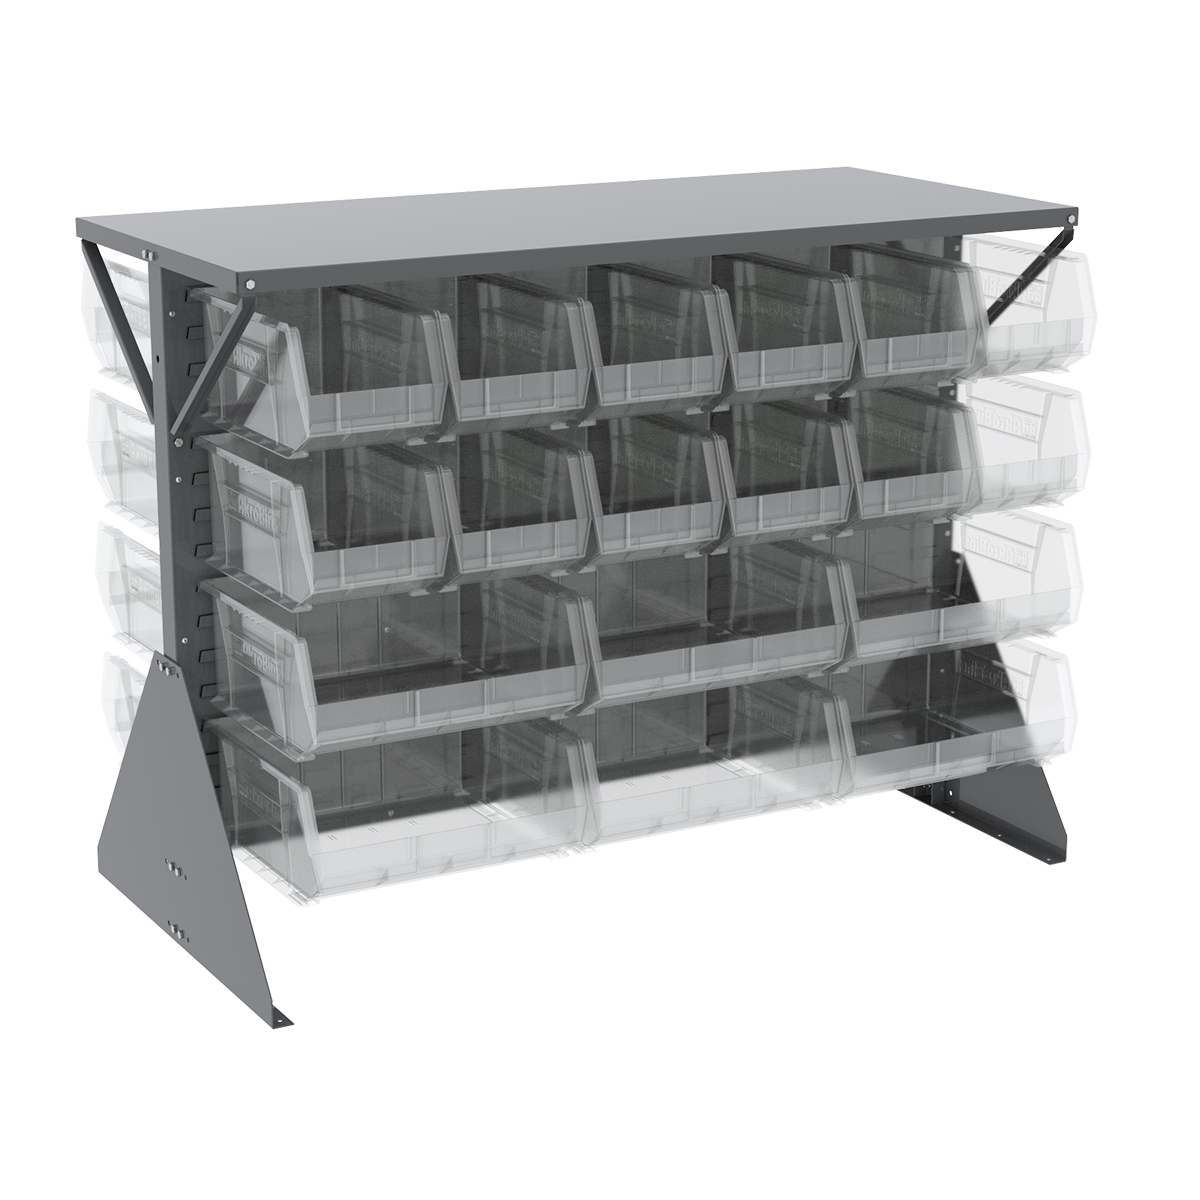 Item DISCONTINUED by Manufacturer.  Low Profile Floor Rack, 2-Sided, Shelf w/ 36 AkroBins, Gray/Clear (30606GYASSTSC).  This item sold in carton quantities of 1.